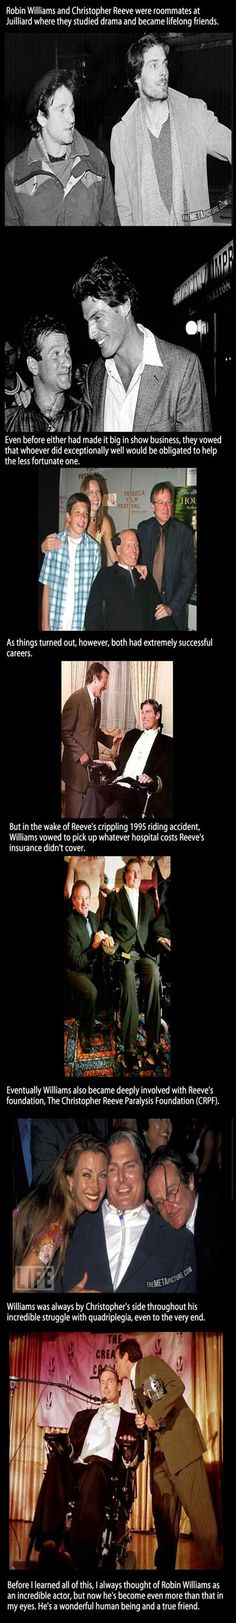 thats sweet that shows a realy a storng friendship it nices to have someone to relie on if needed #chistopher reeves and robin williams#rest in peace SUPERMAN!!!